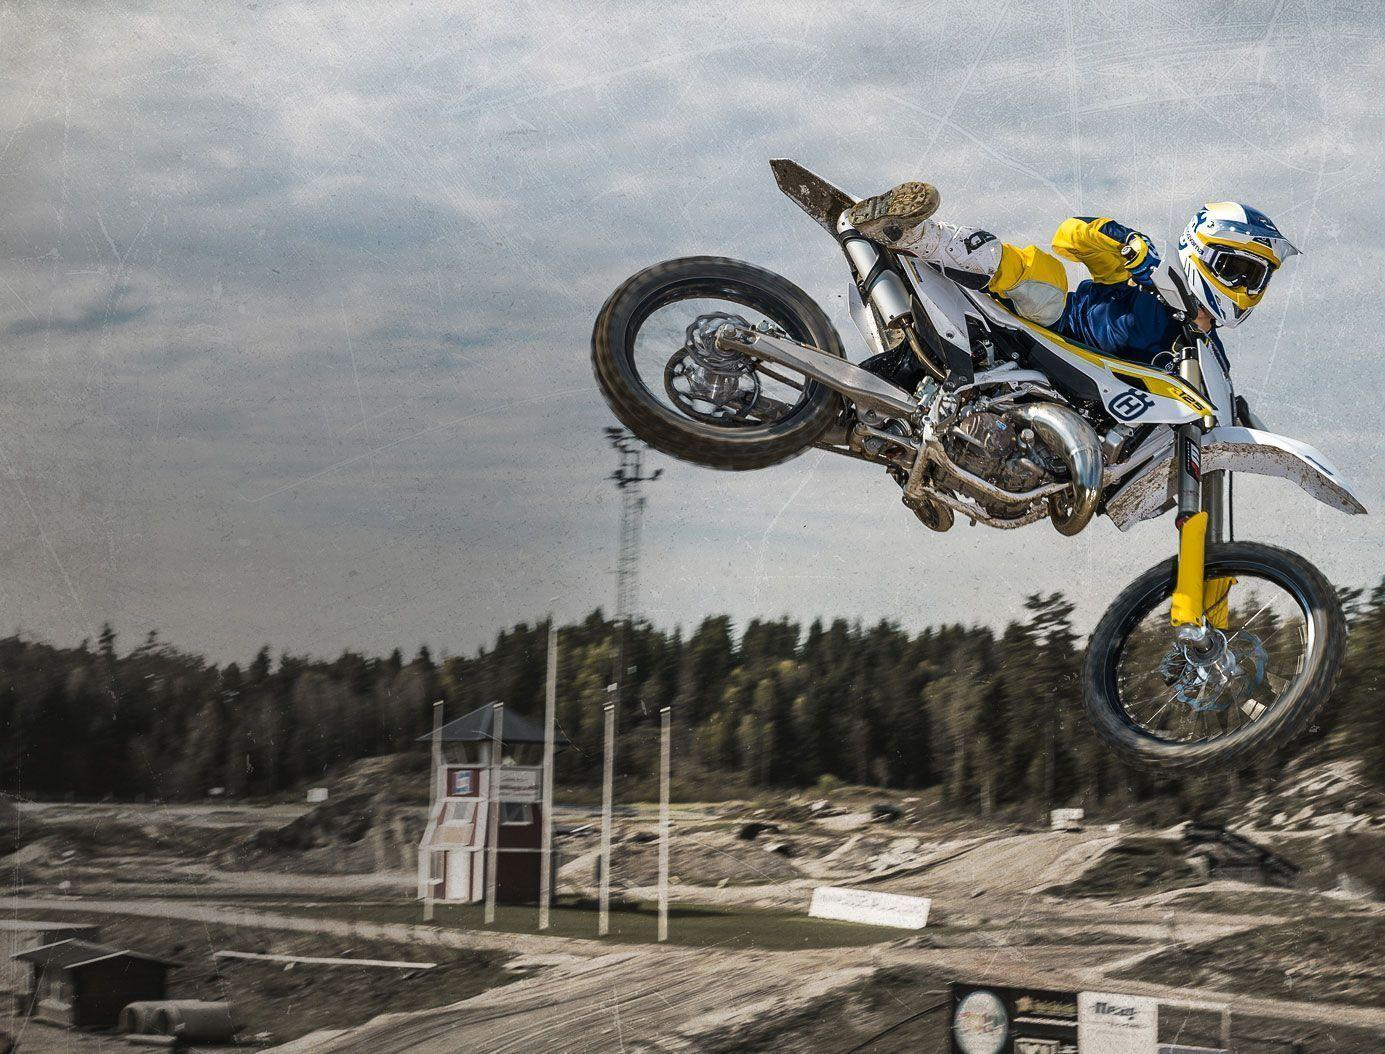 Motocross 2015 Wallpapers